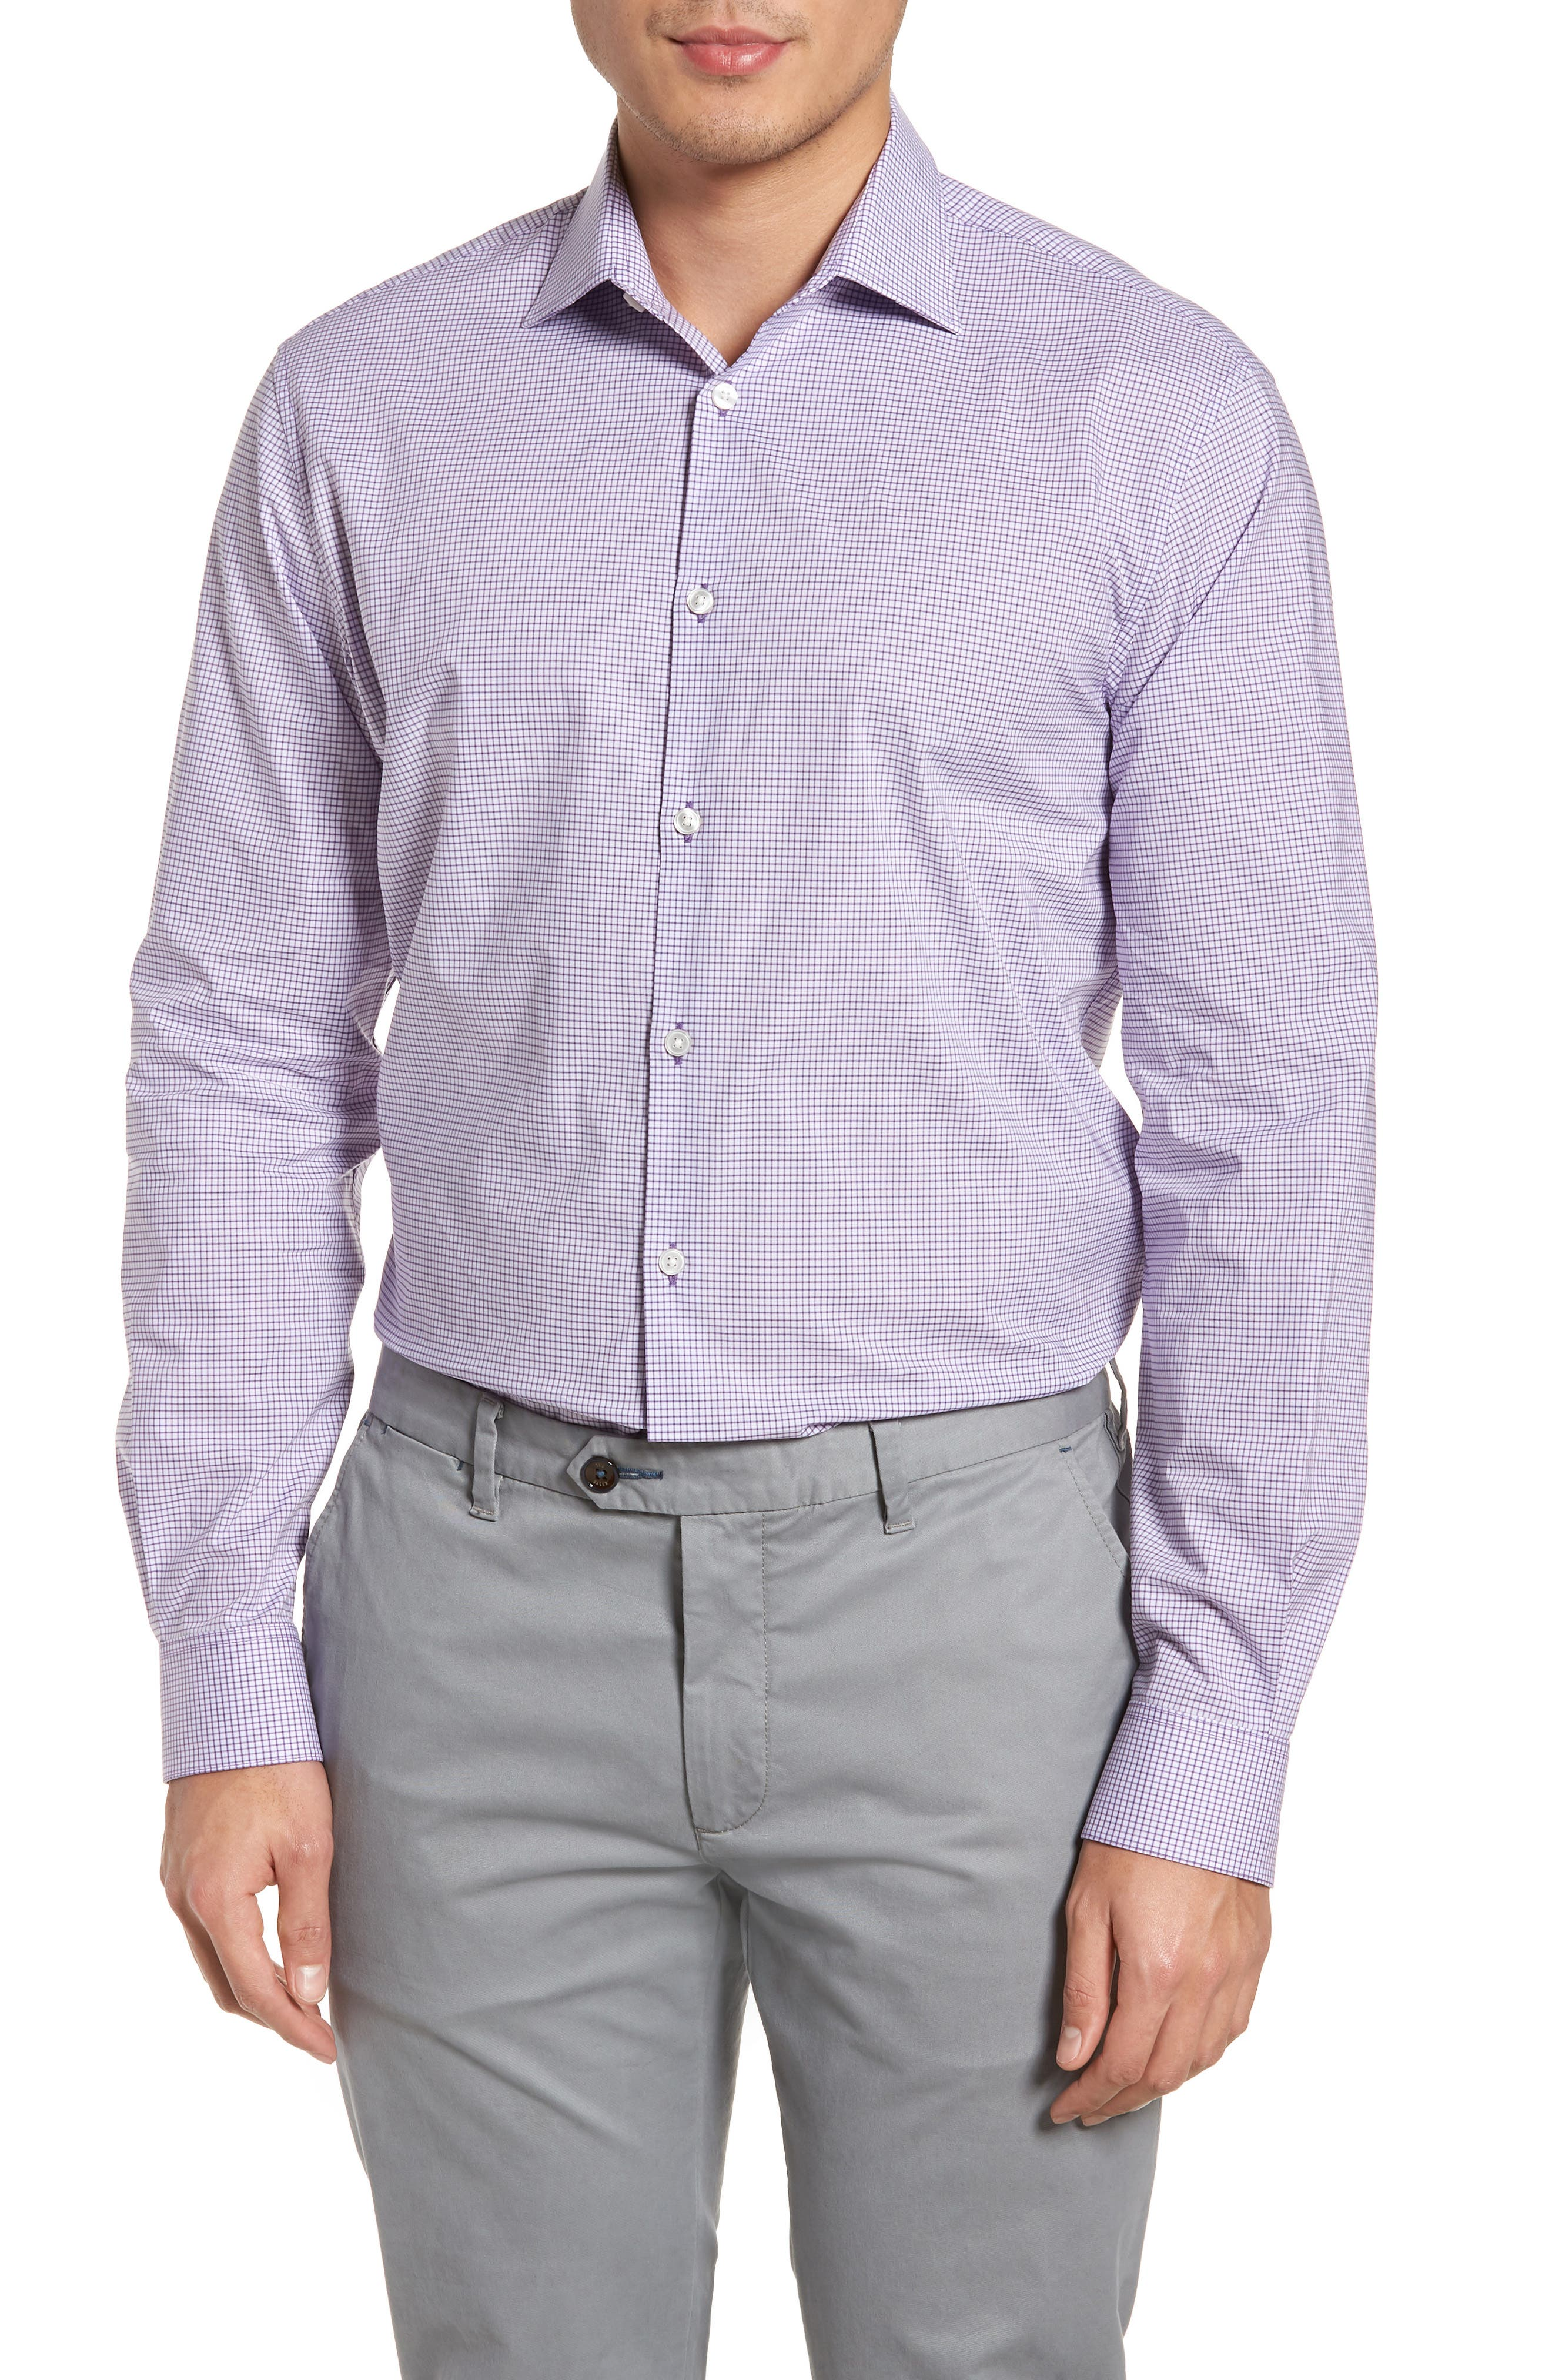 Regular Fit Stretch Check Dress Shirt,                             Main thumbnail 1, color,                             522